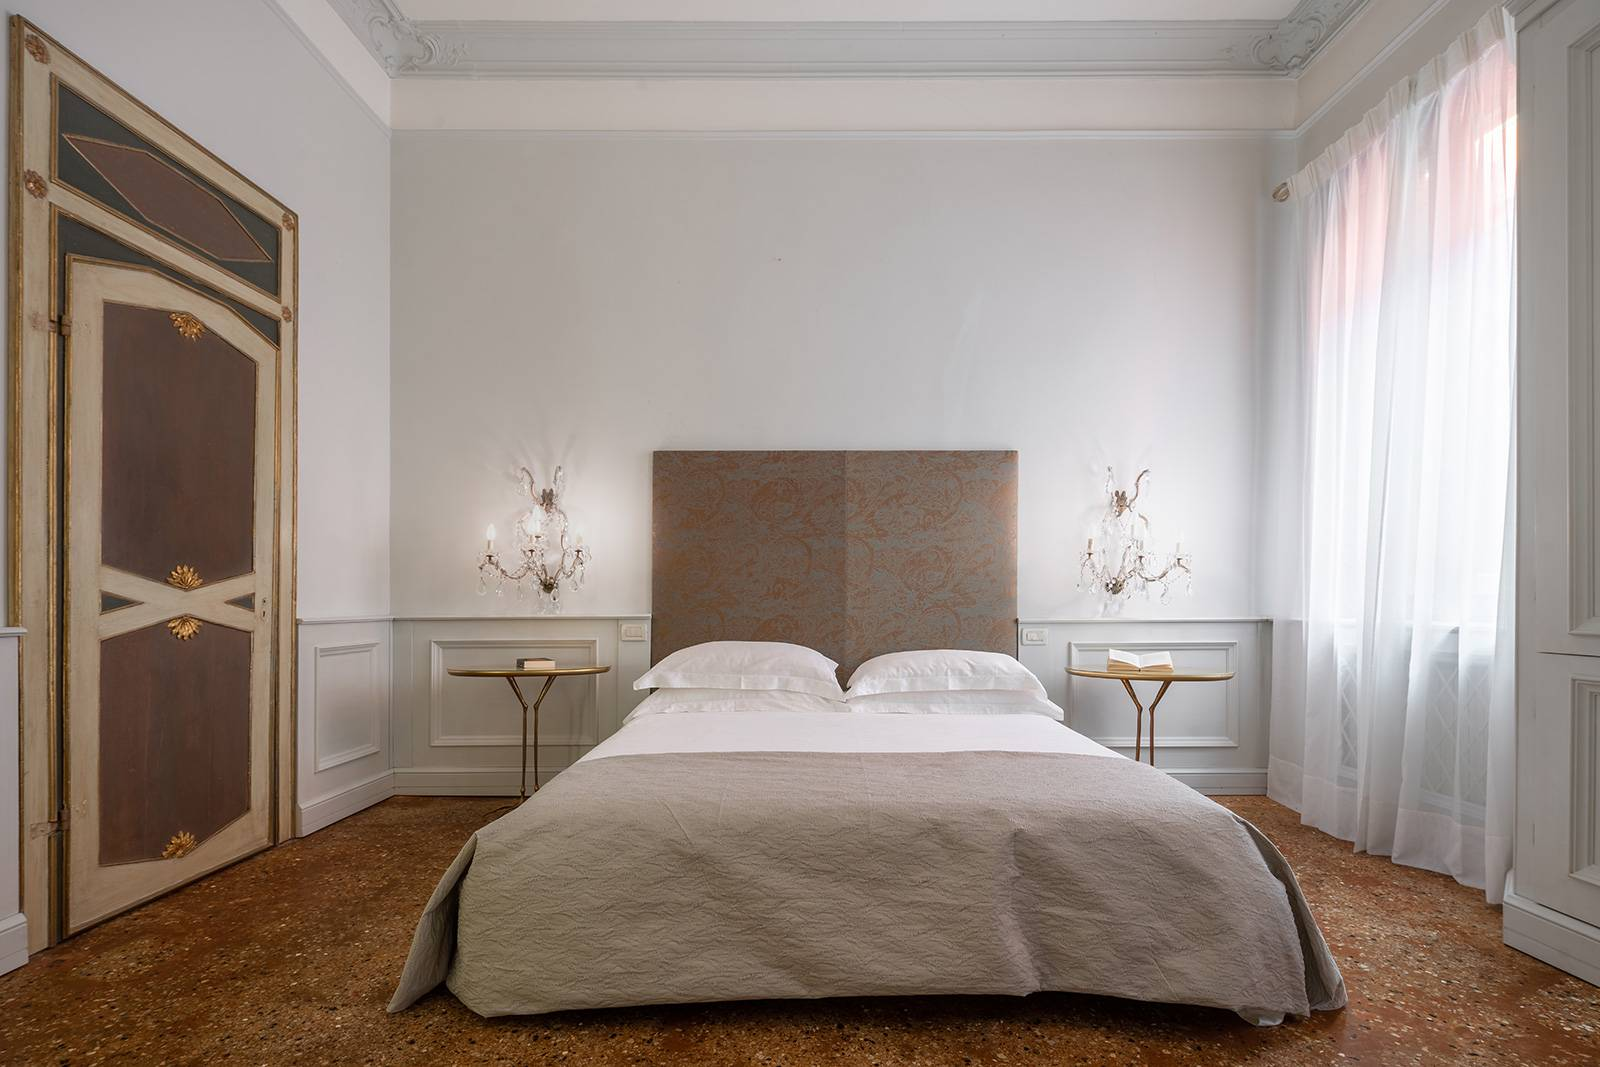 the master bedroom is very spacious and elegant too